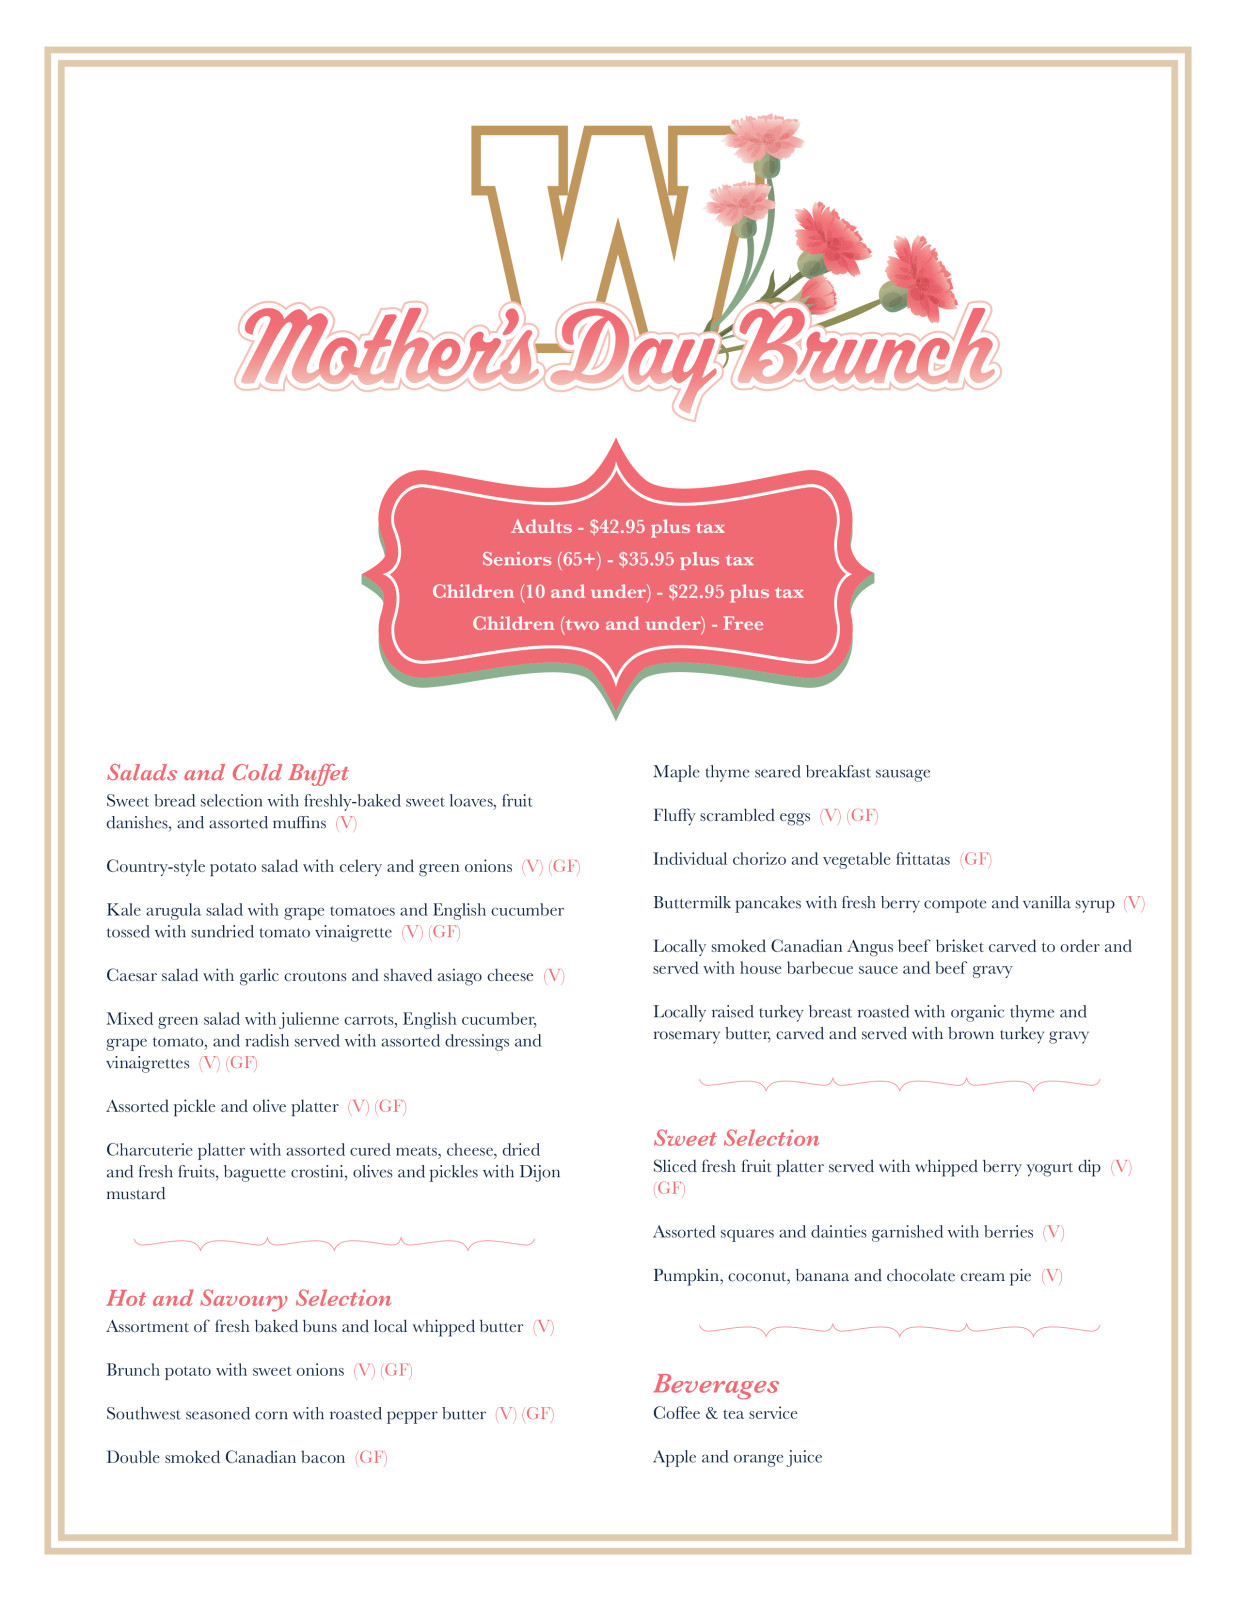 2017 Mother's Day Brunch Menu